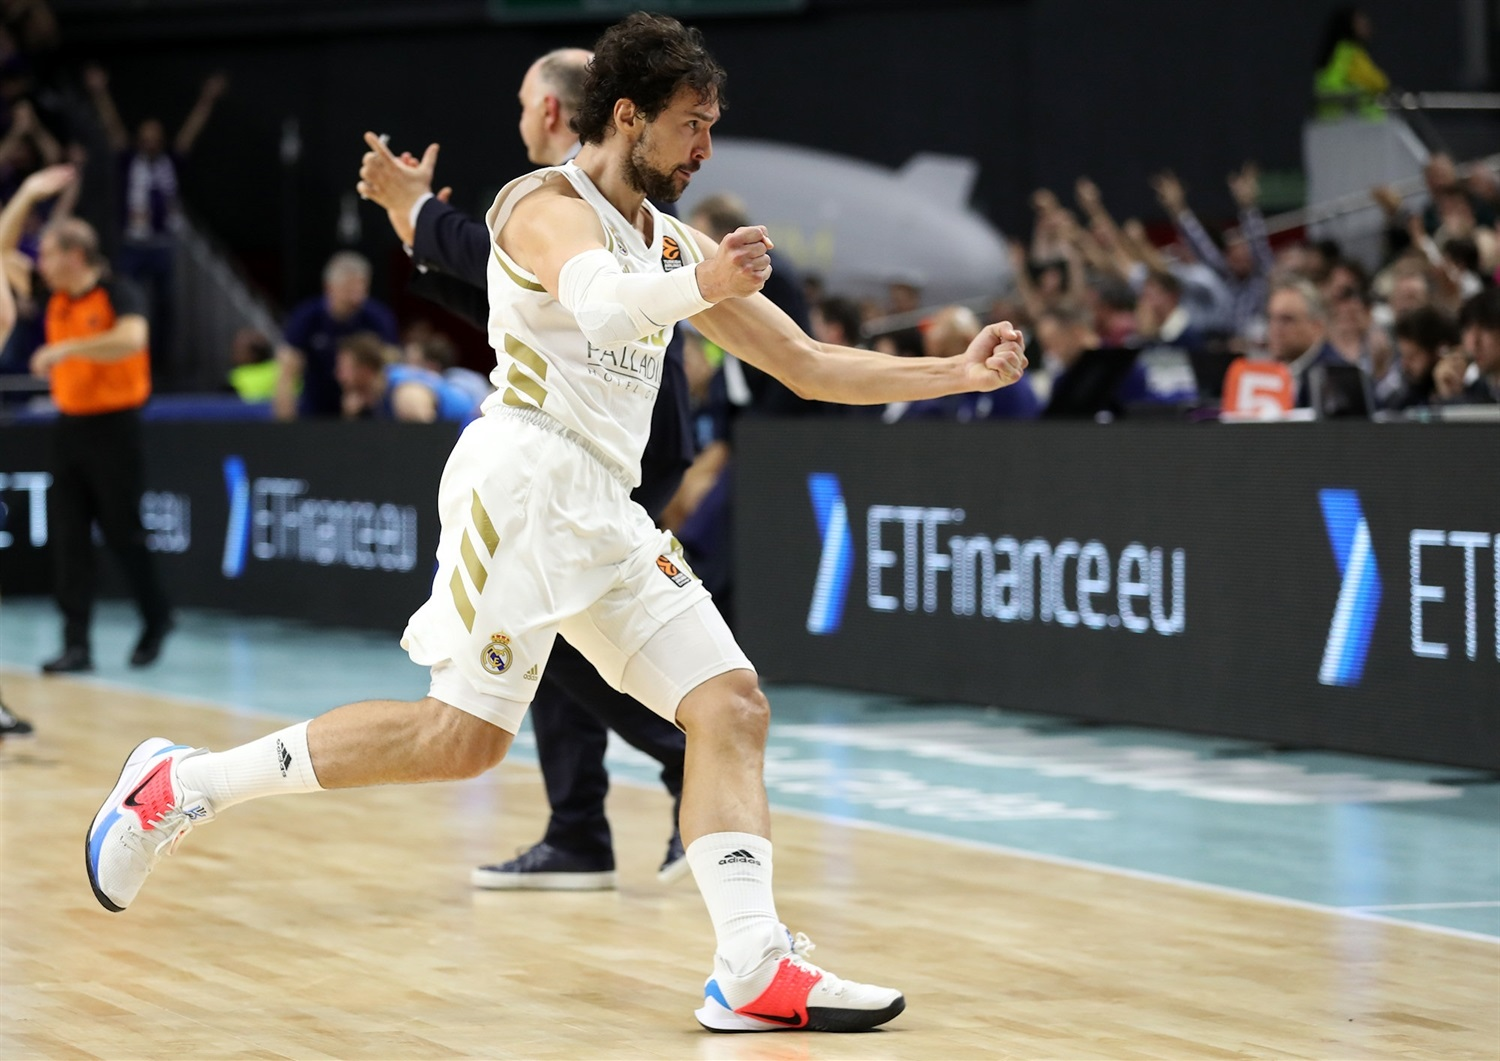 Sergio Llull celebrates - Real Madrid - EB19